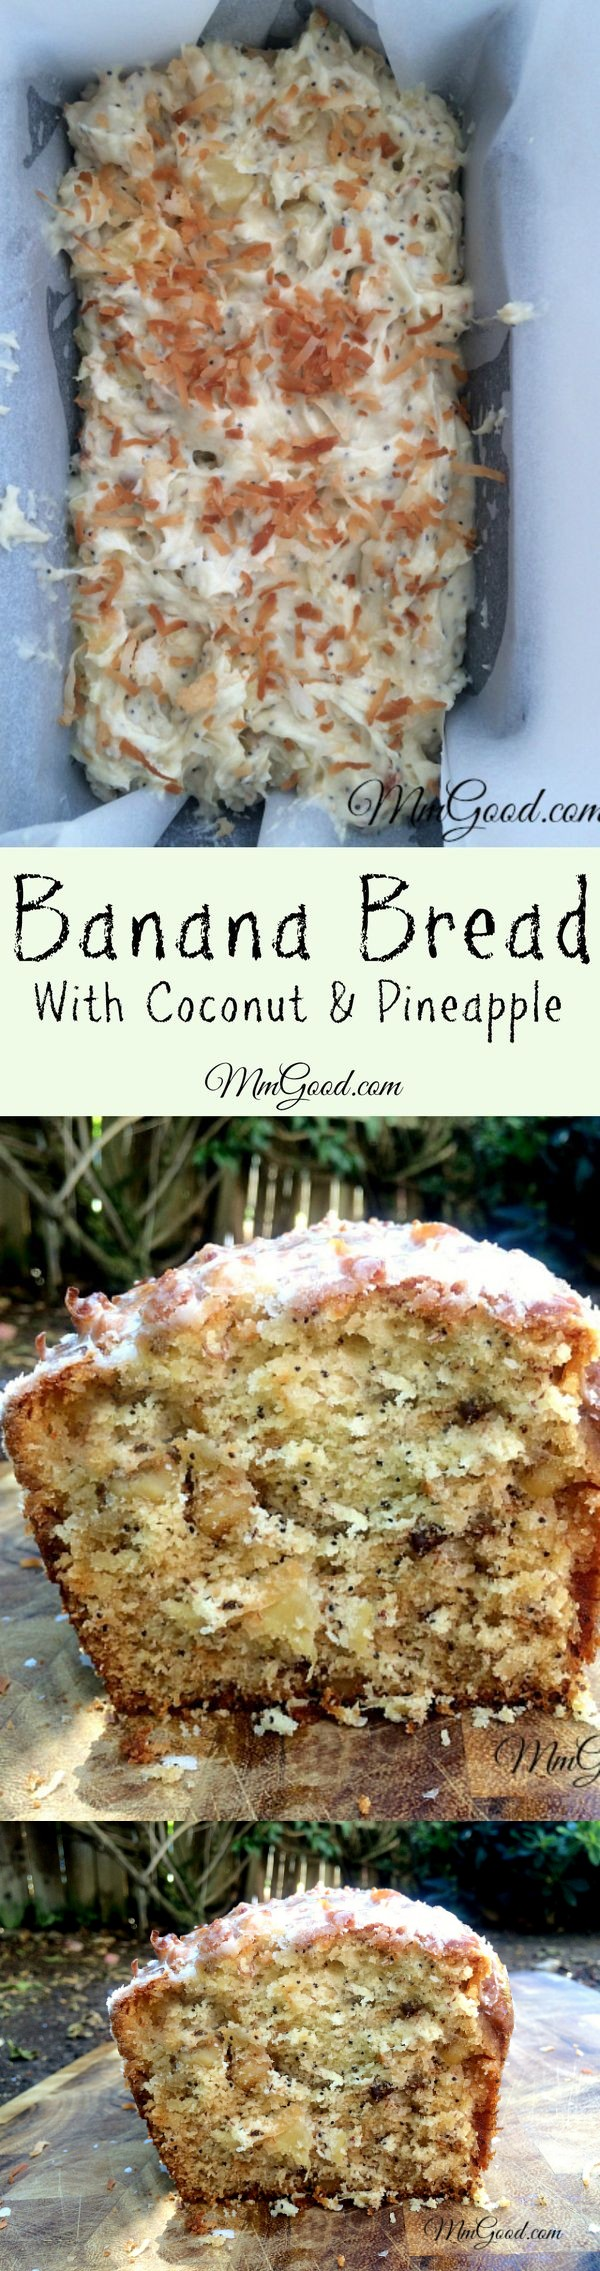 Banana Bread with Coconut and Pineapple